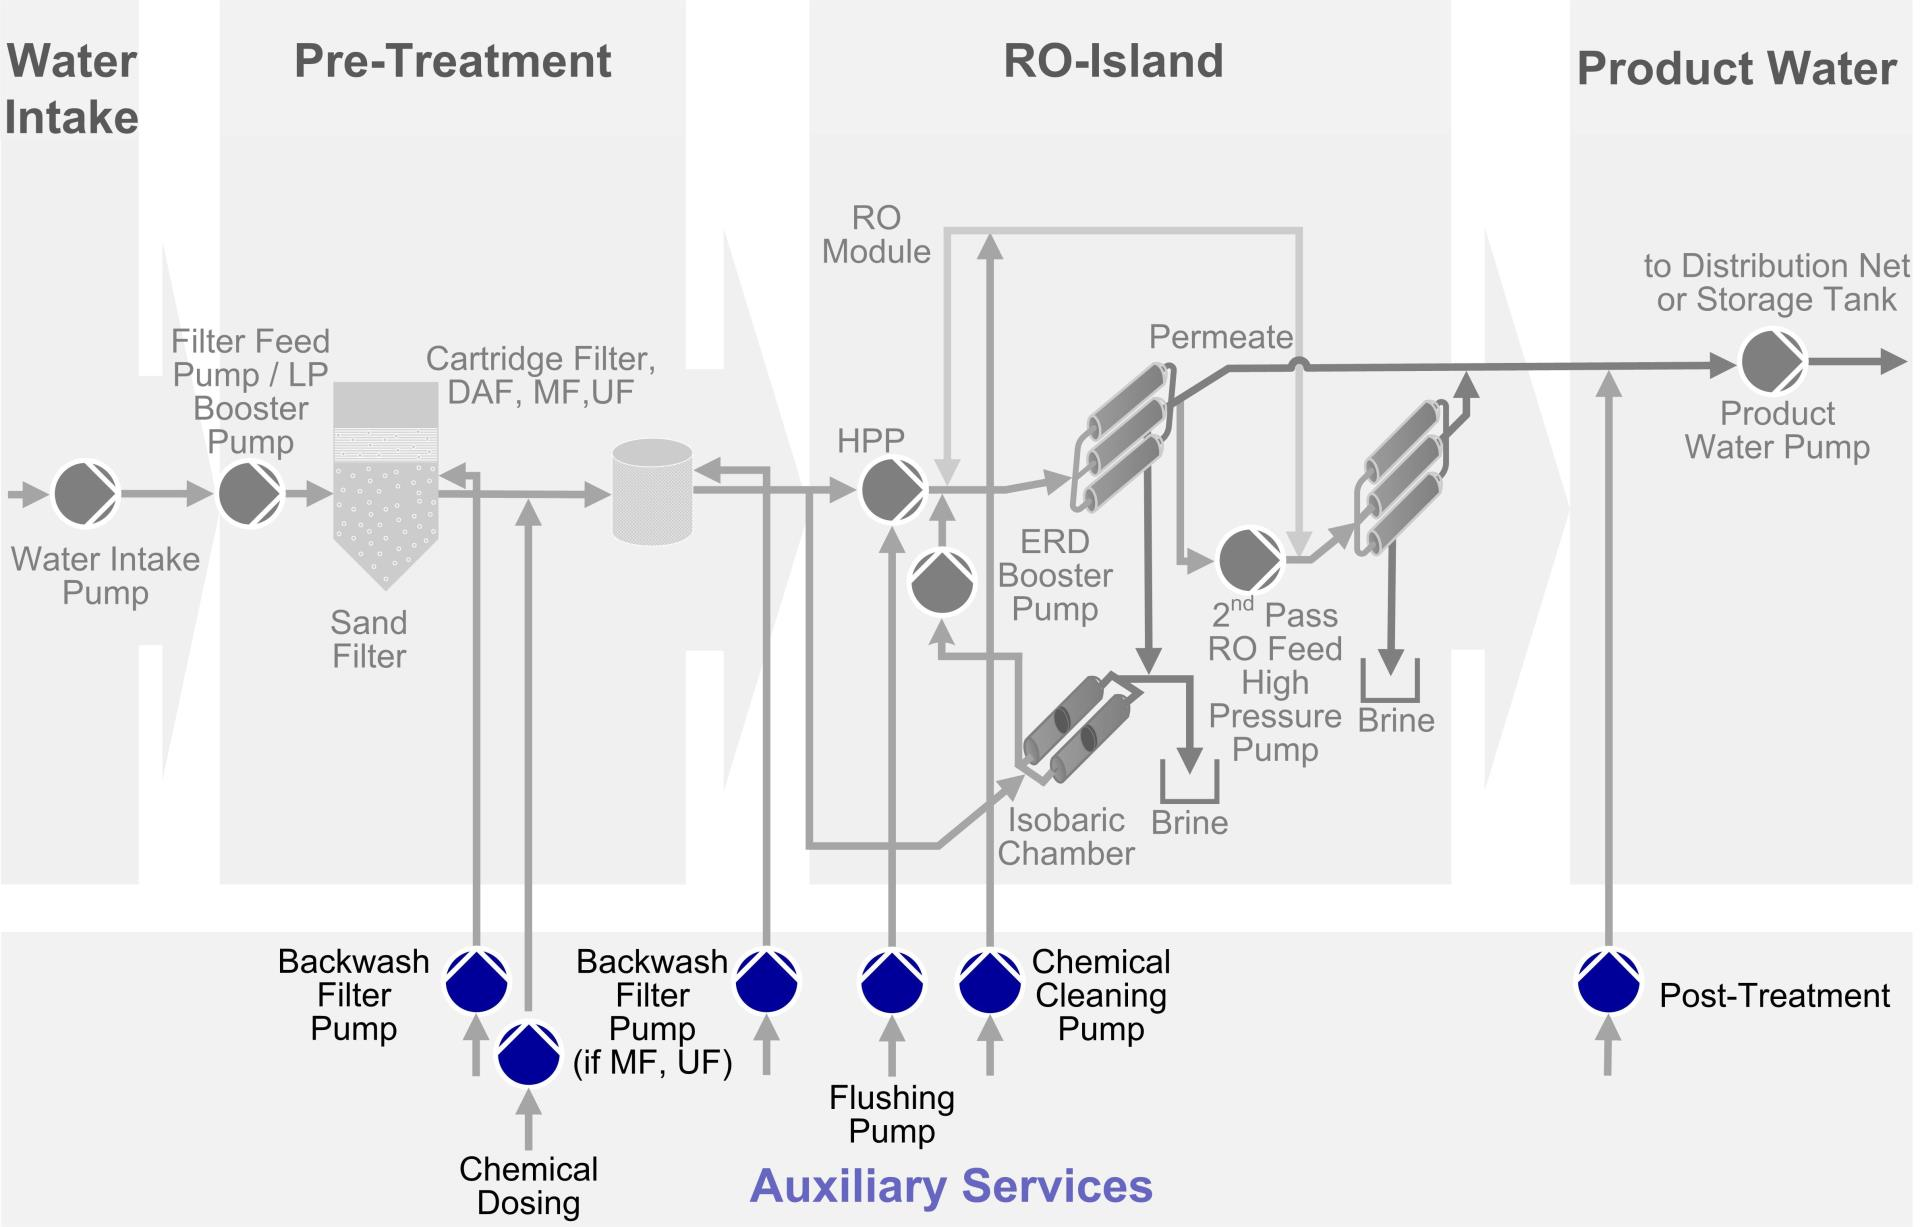 Auxiliary services in the SWRO process